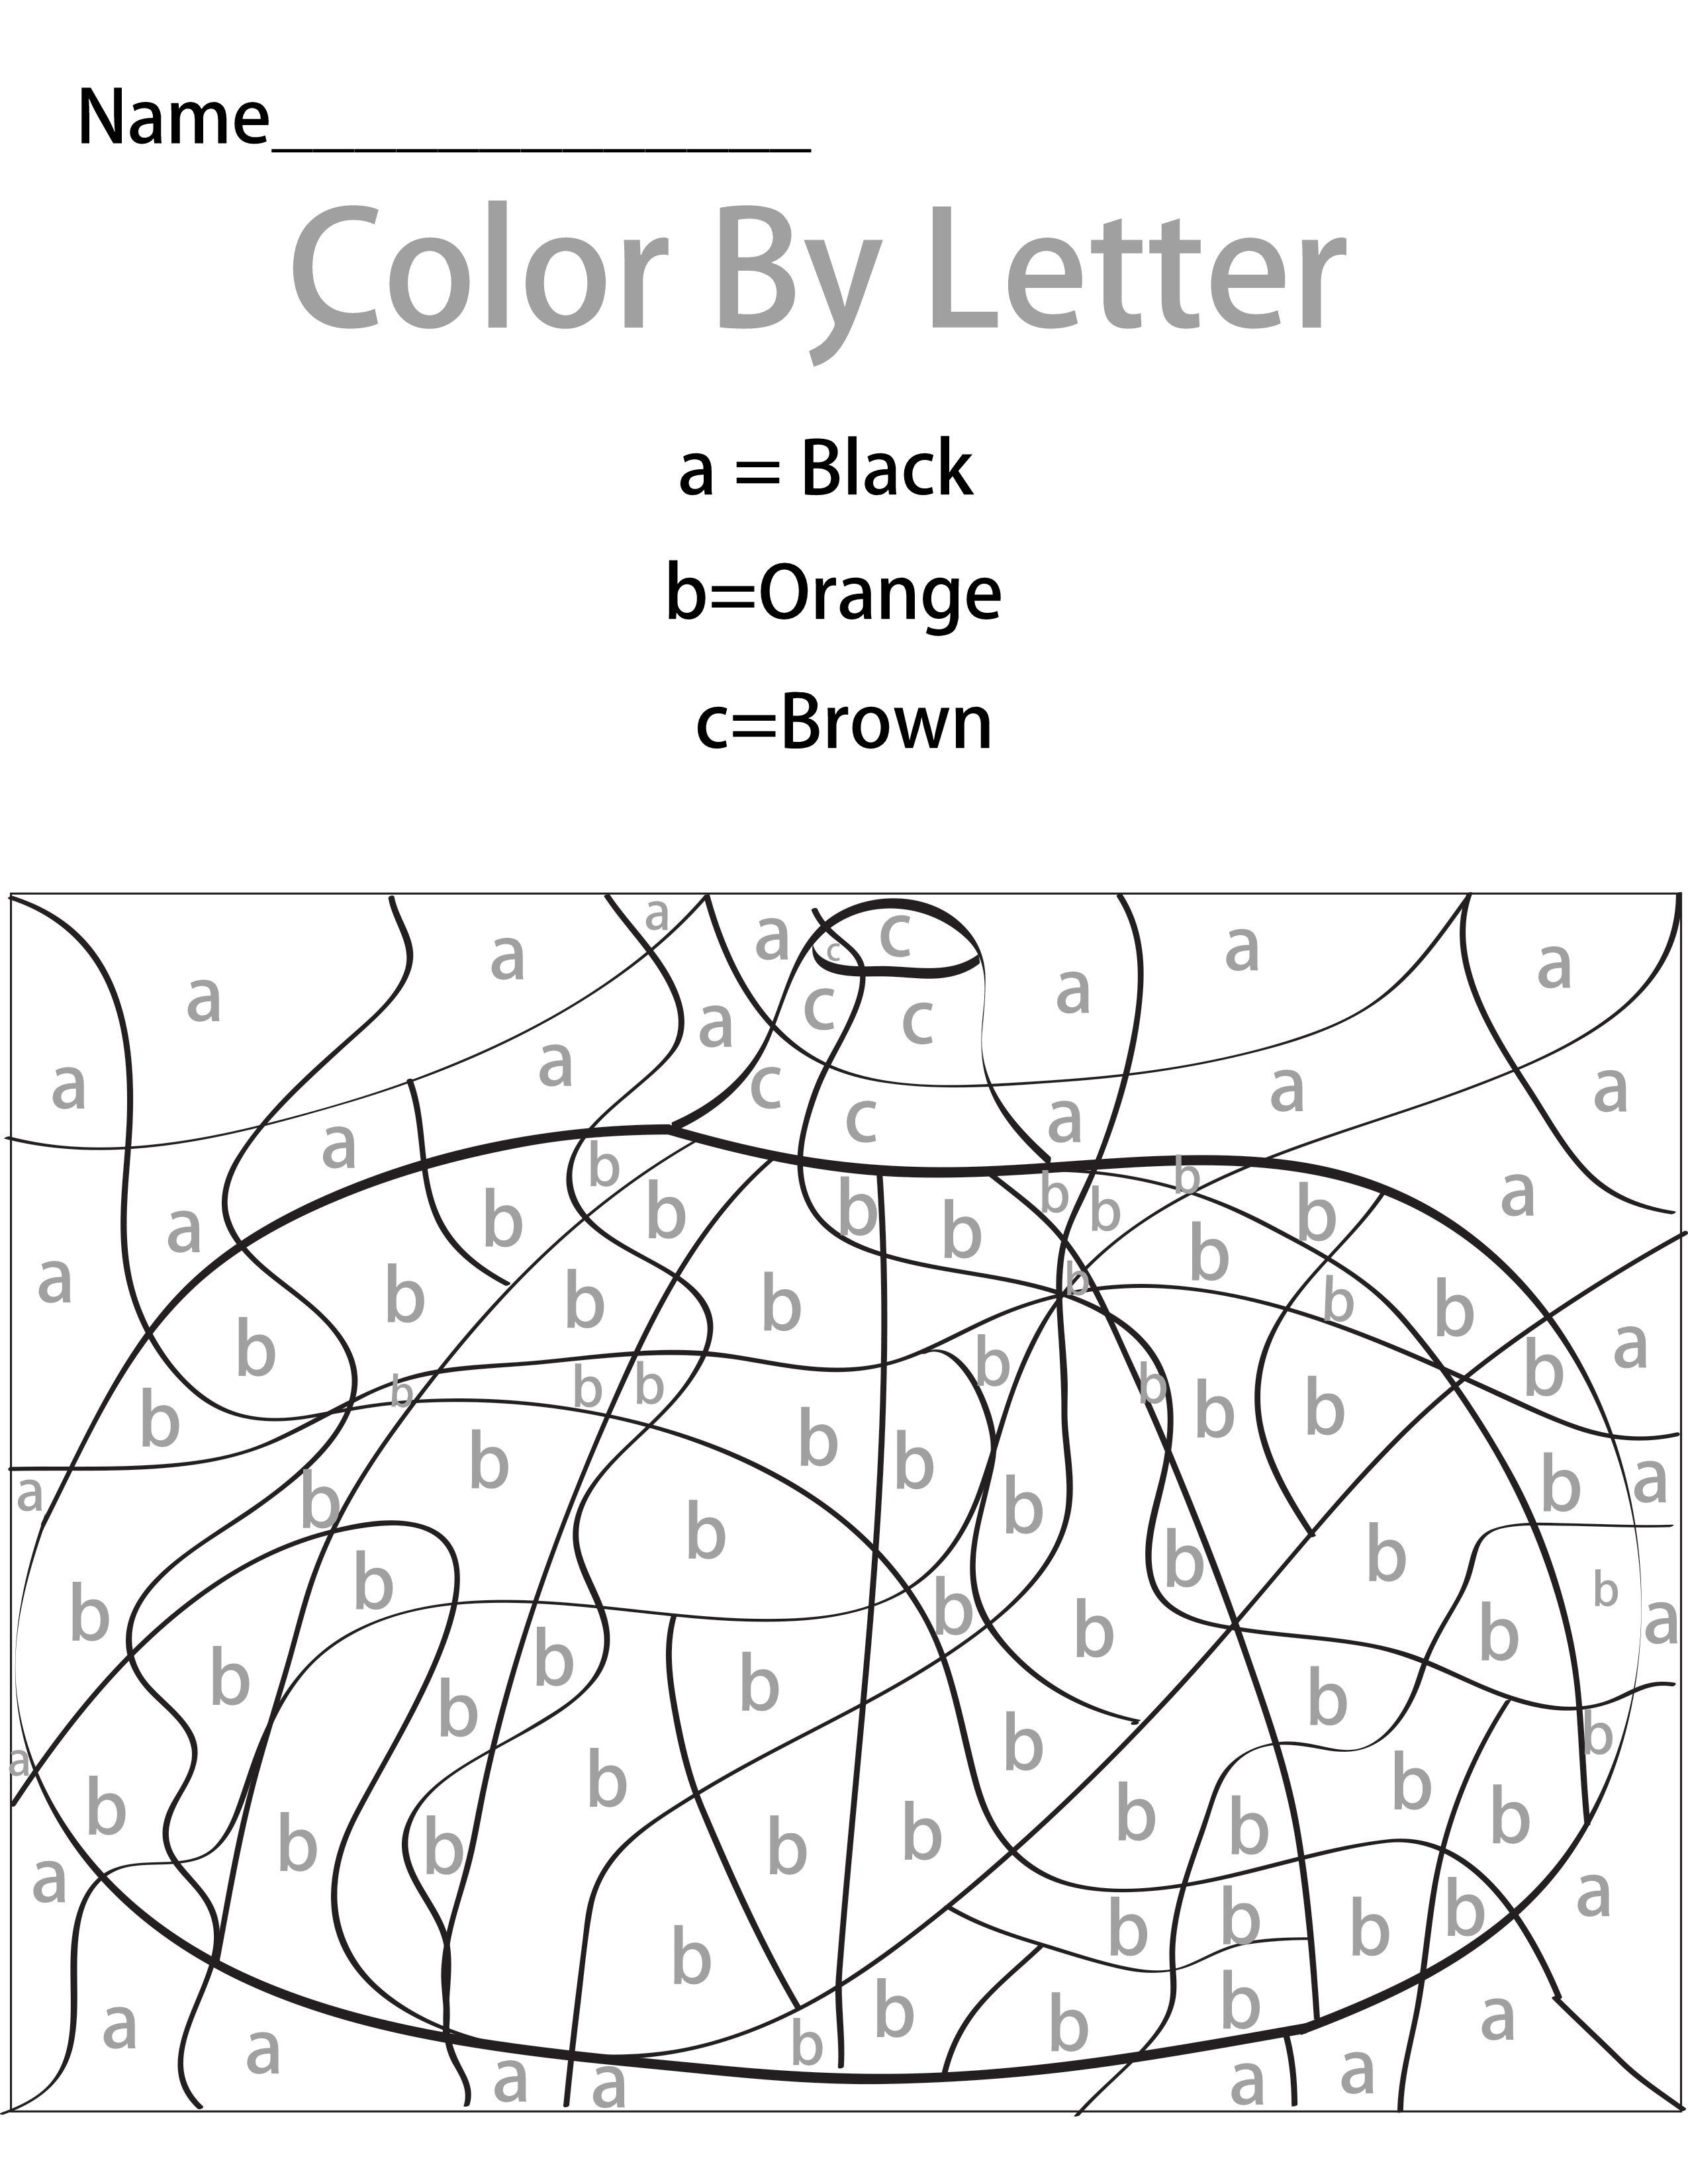 38+ Color by letter printable trends